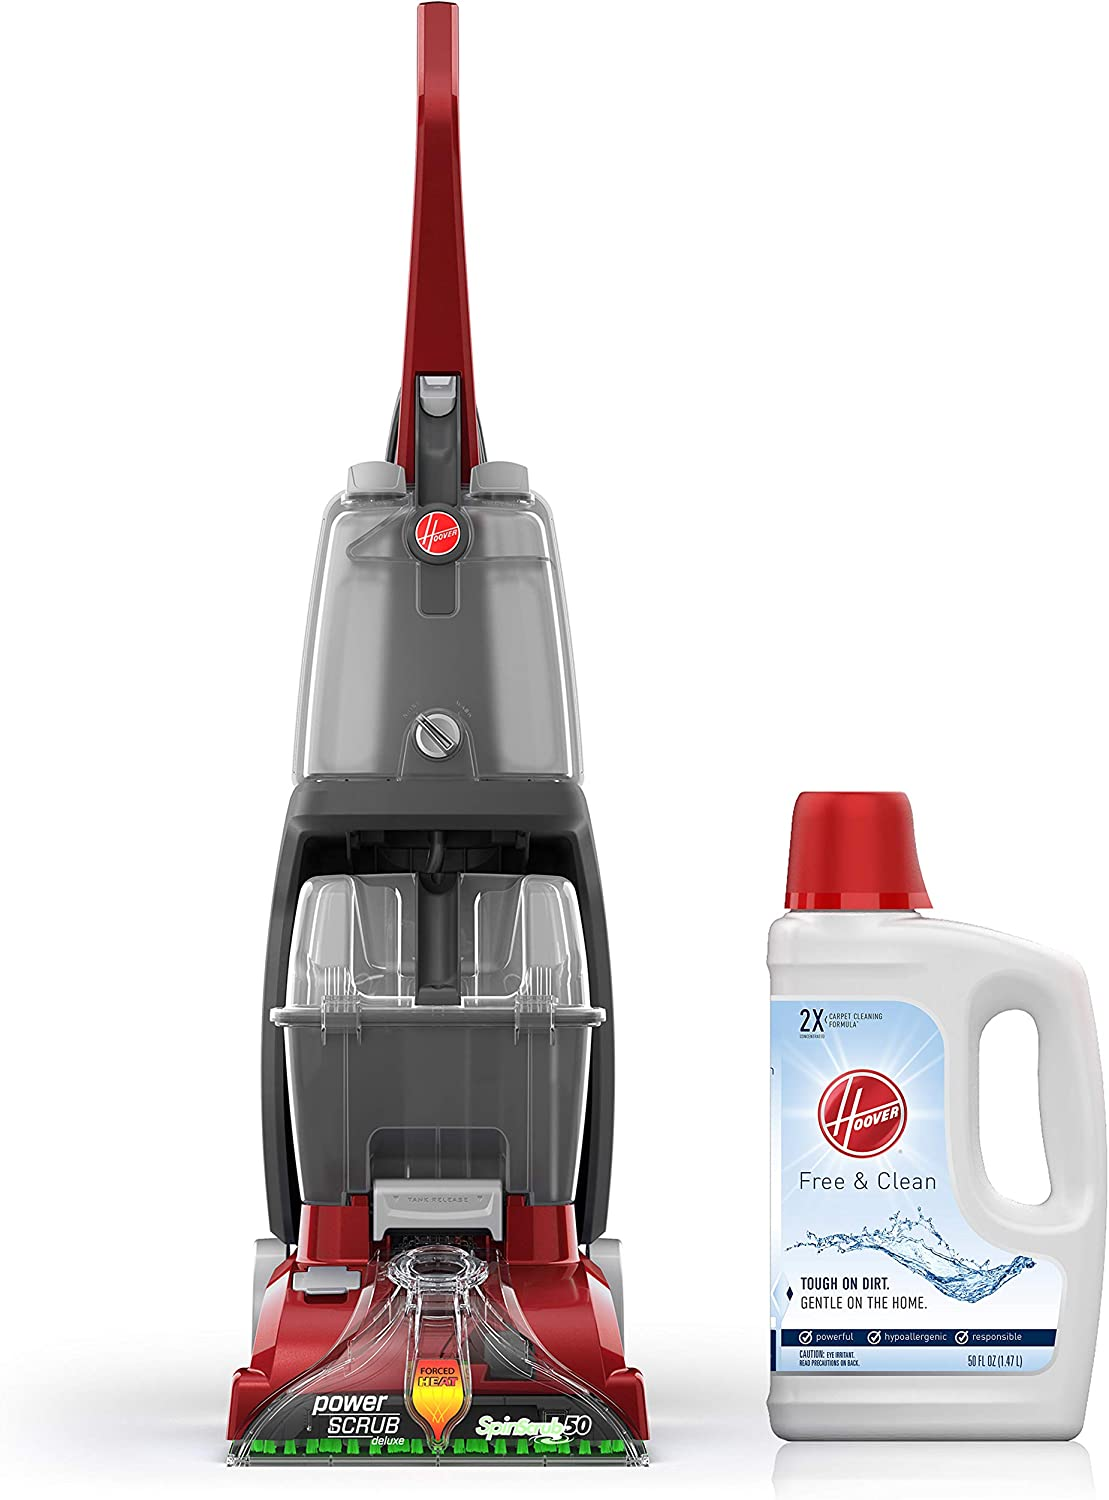 Hoover Power Scrub Deluxe Carpet Washer with Free & Clean Carpet Cleaning Solution (50 oz), FH50150, AH30952